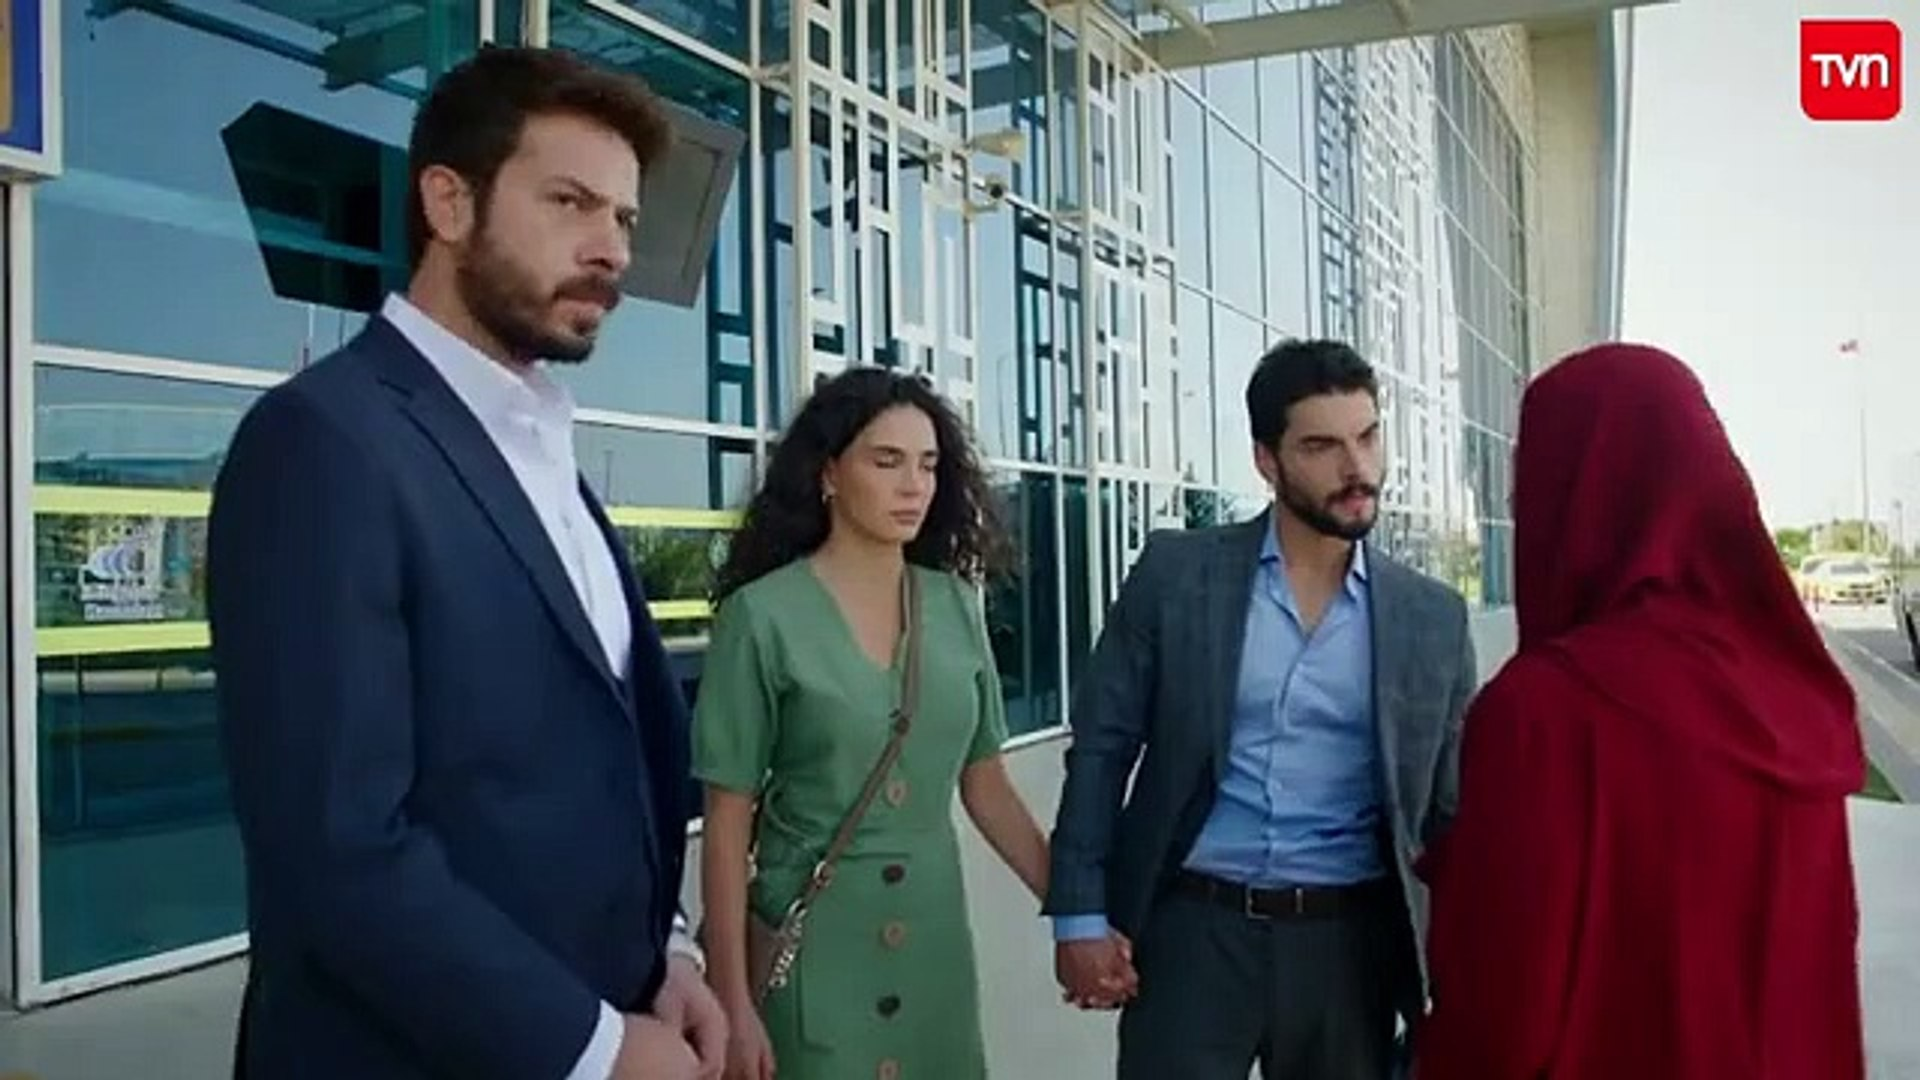 Hercai Capitulo 70 Completo Hercai Capitulo 70 Completo Hercai Capitulo 70 Completo Hercai Capitulo 70 Completo Video Dailymotion